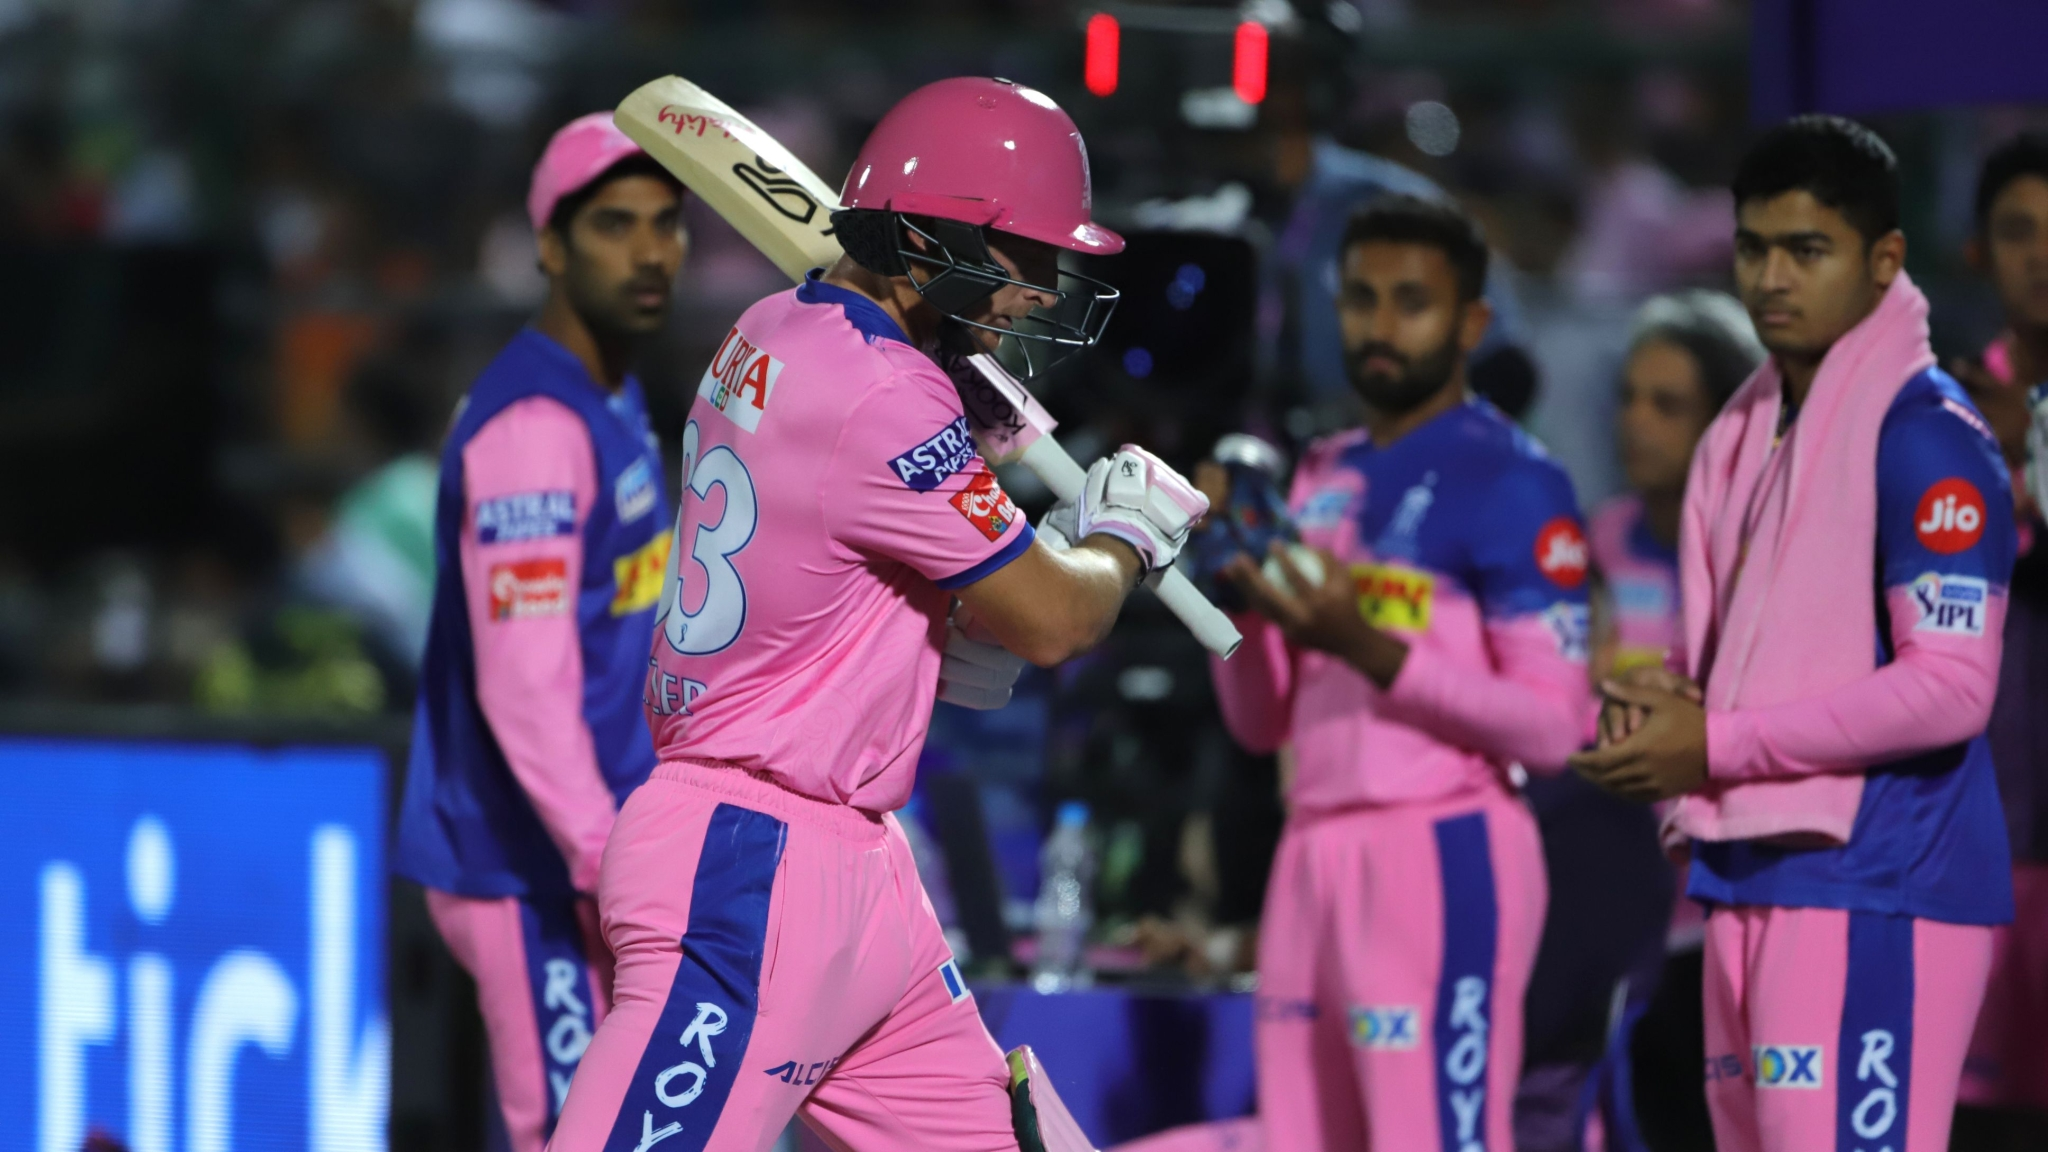 Buttler Becomes First Victim of 'Mankading' in IPL, Out off Ashwin